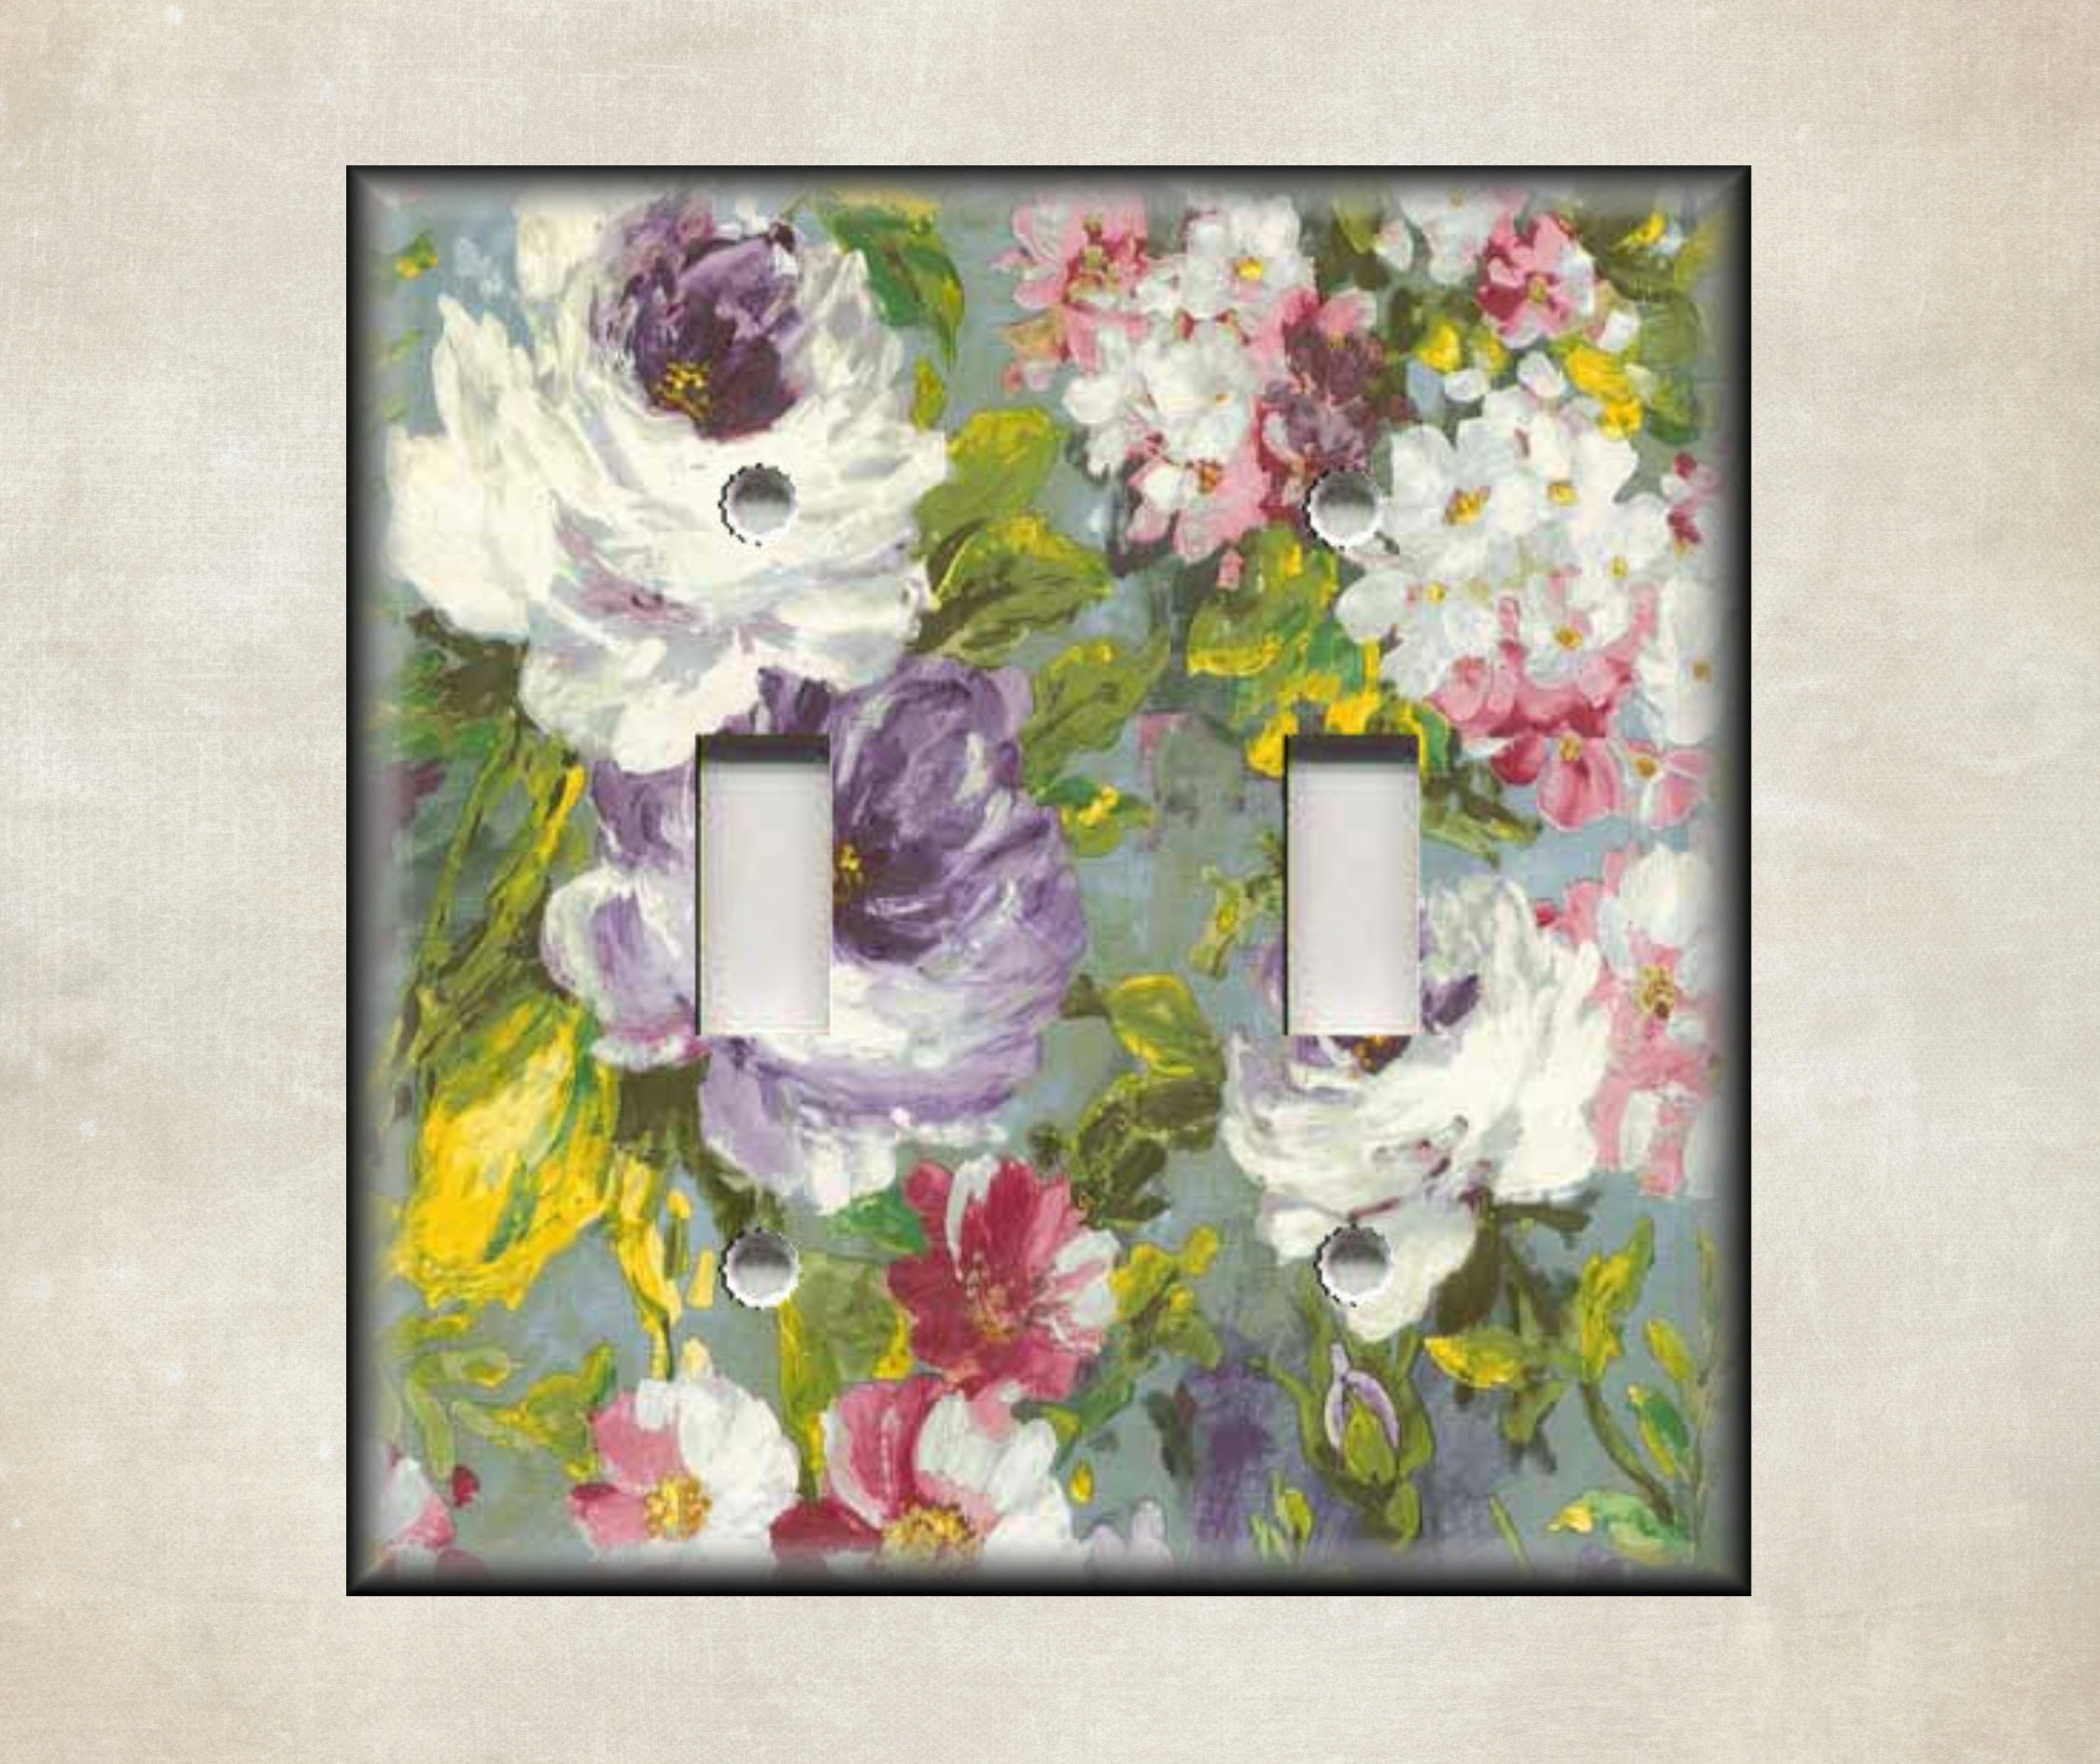 Decorative Switch Plate Covers And Outlet Covers Botanical Art Decor Luna Gallery Designs Free Shipping Metal Light Switch Cover